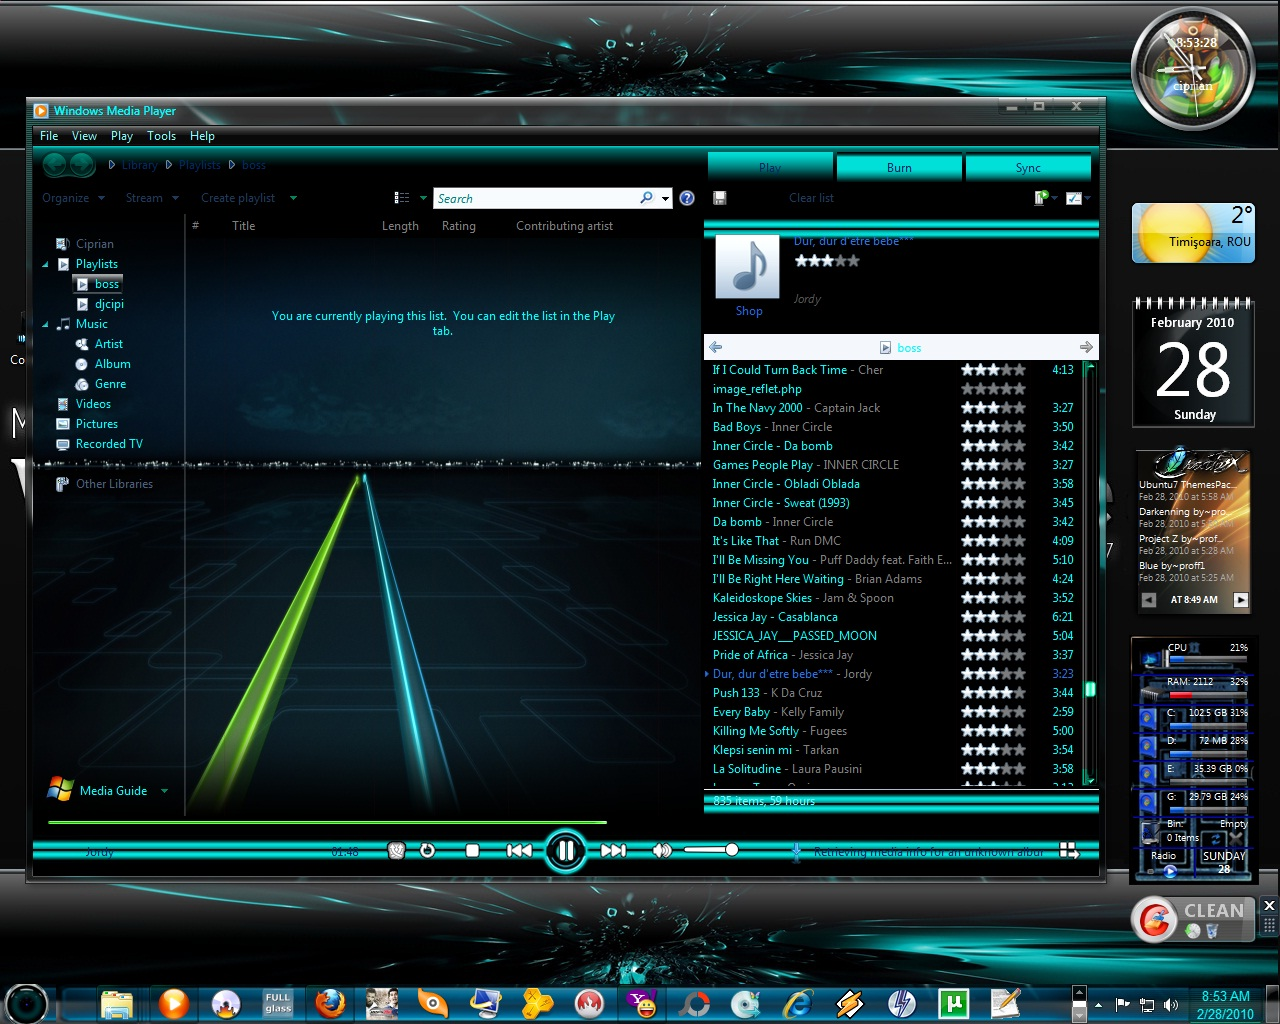 Free Download Windows Media Player 12 Application or Games Full